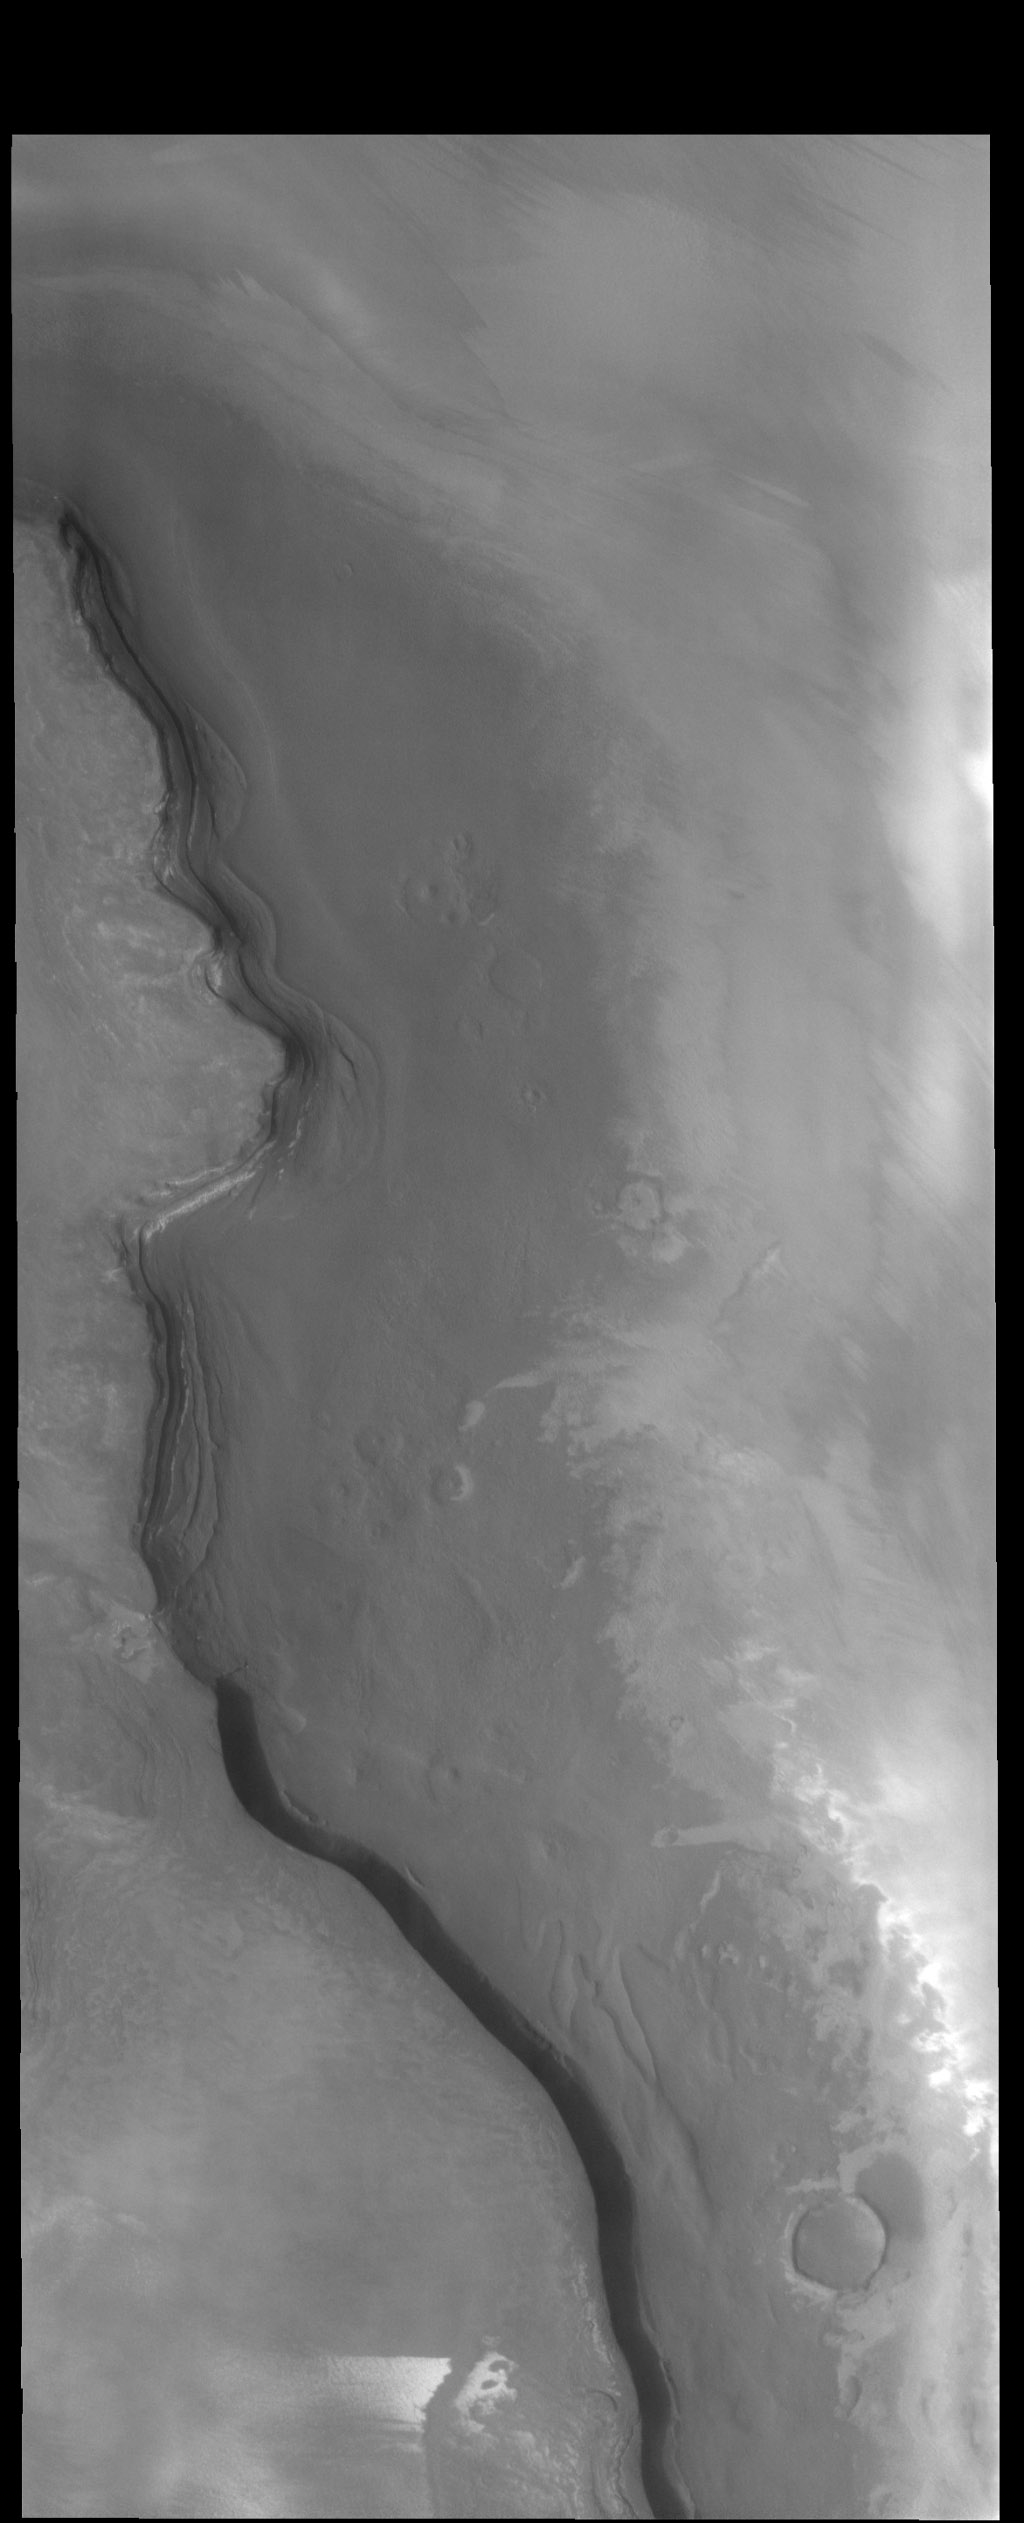 The cliff face in this image captured by NASA's 2001 Mars Odyssey spacecraft is called Rupes Tenius (rupes = scarp). The polar cap is the higher region to the left and the plains are located on the right side of the image.